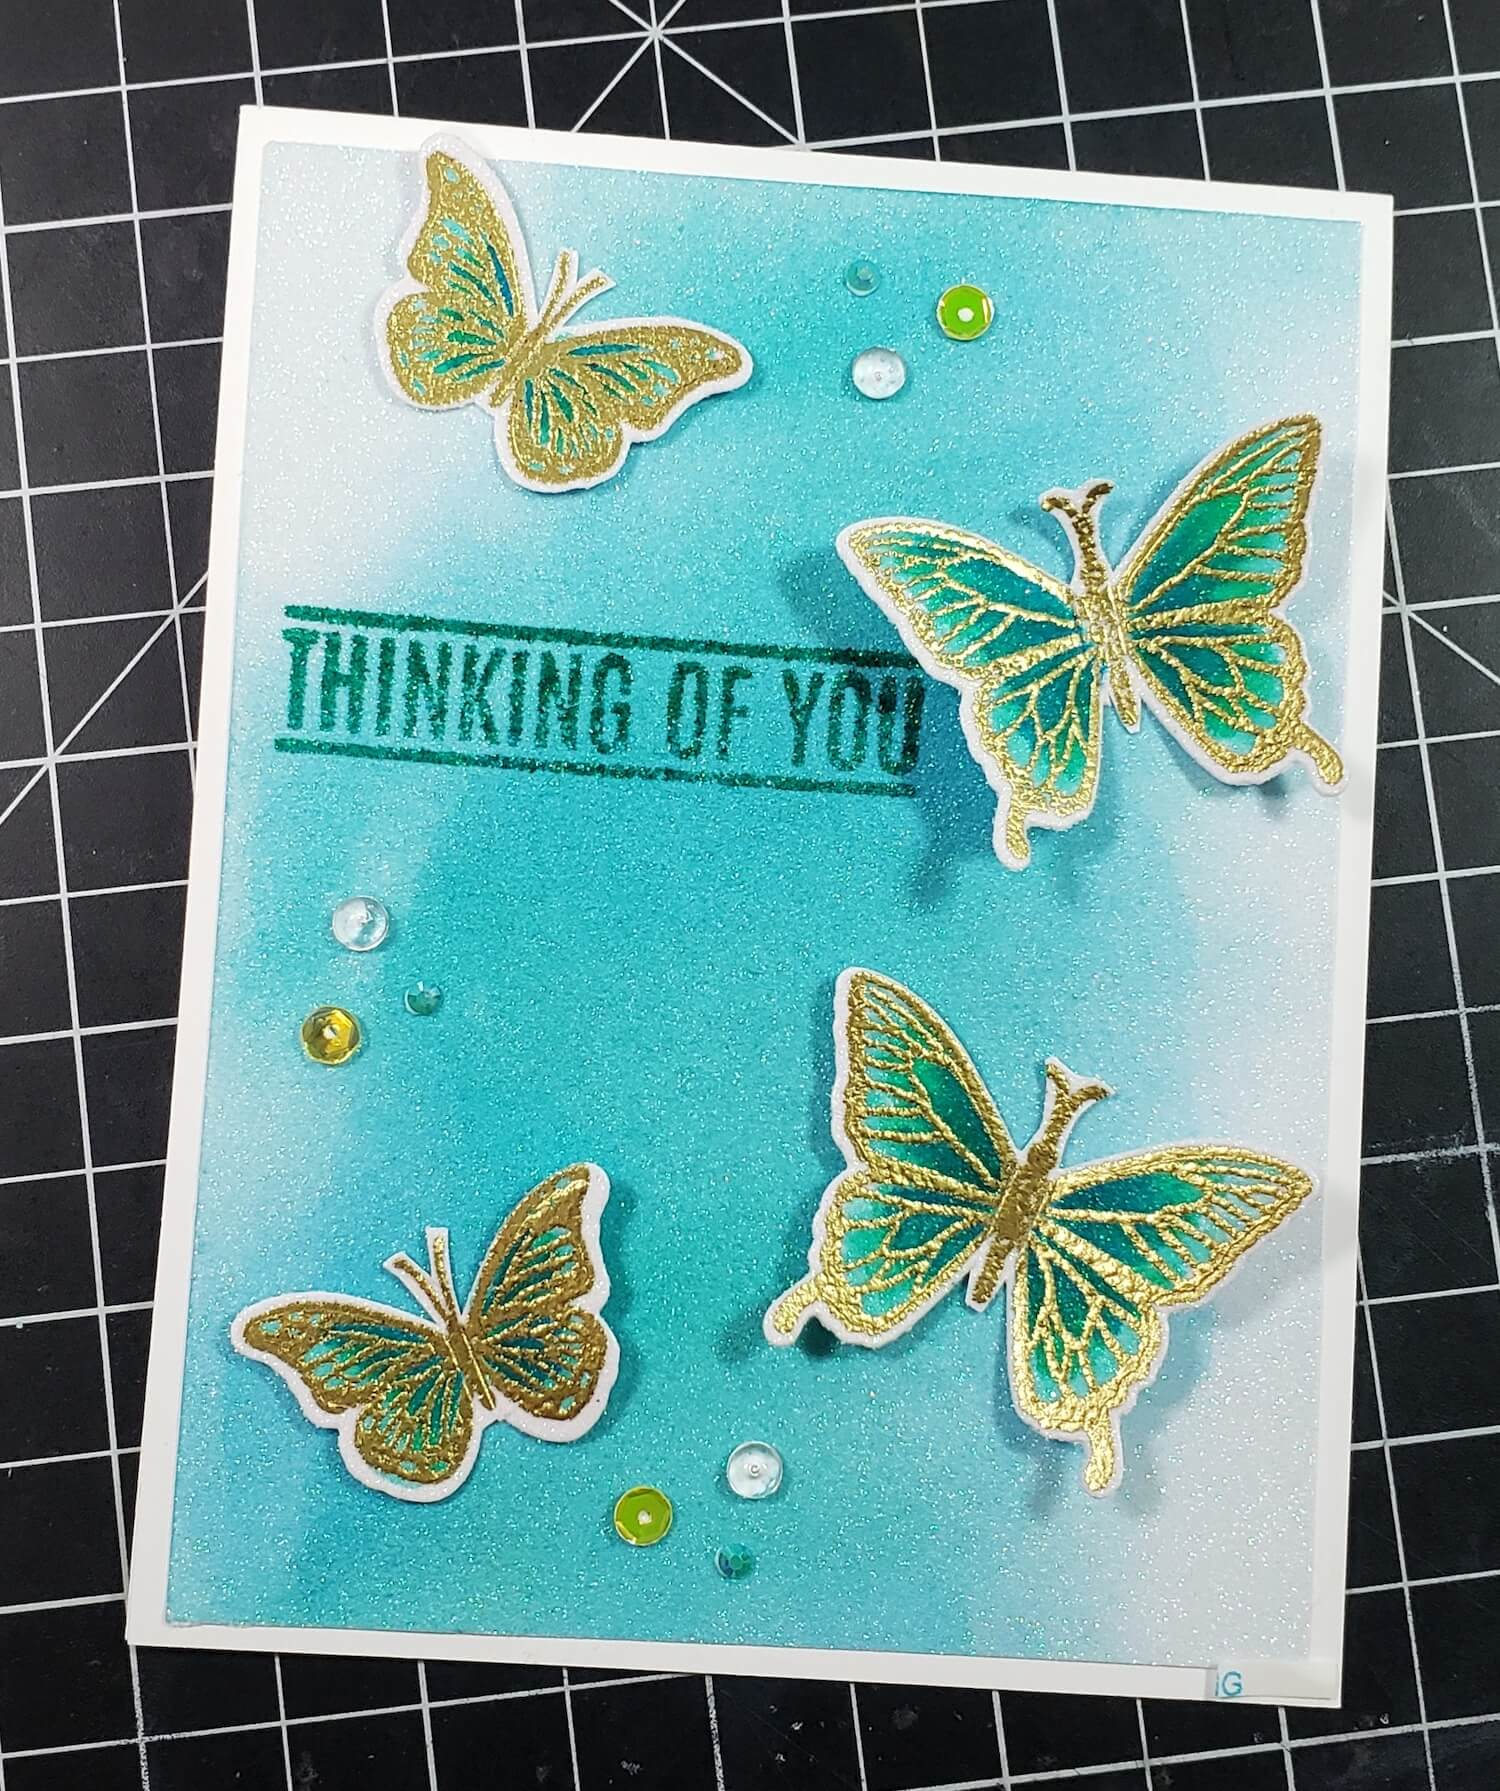 Finished White Glitter Butterfly Card with Sequins